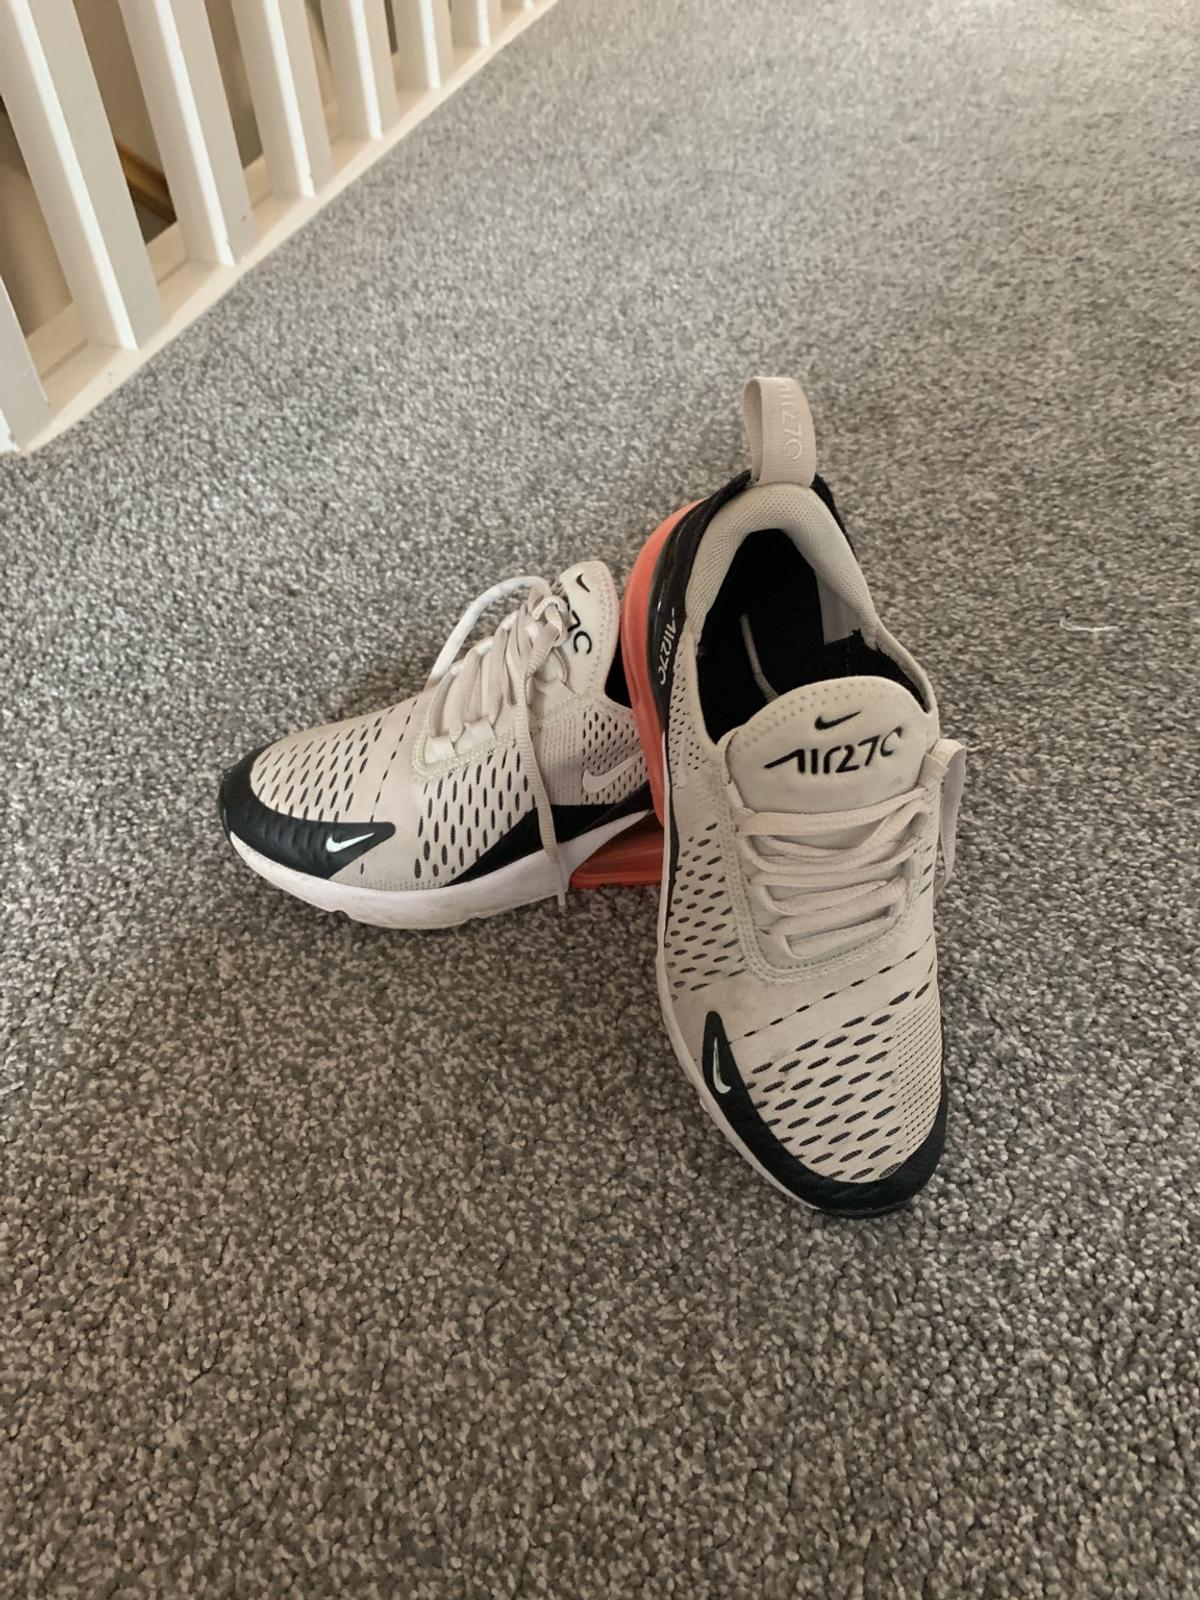 buy online e95d9 a6aa8 Nike air 270 size 3